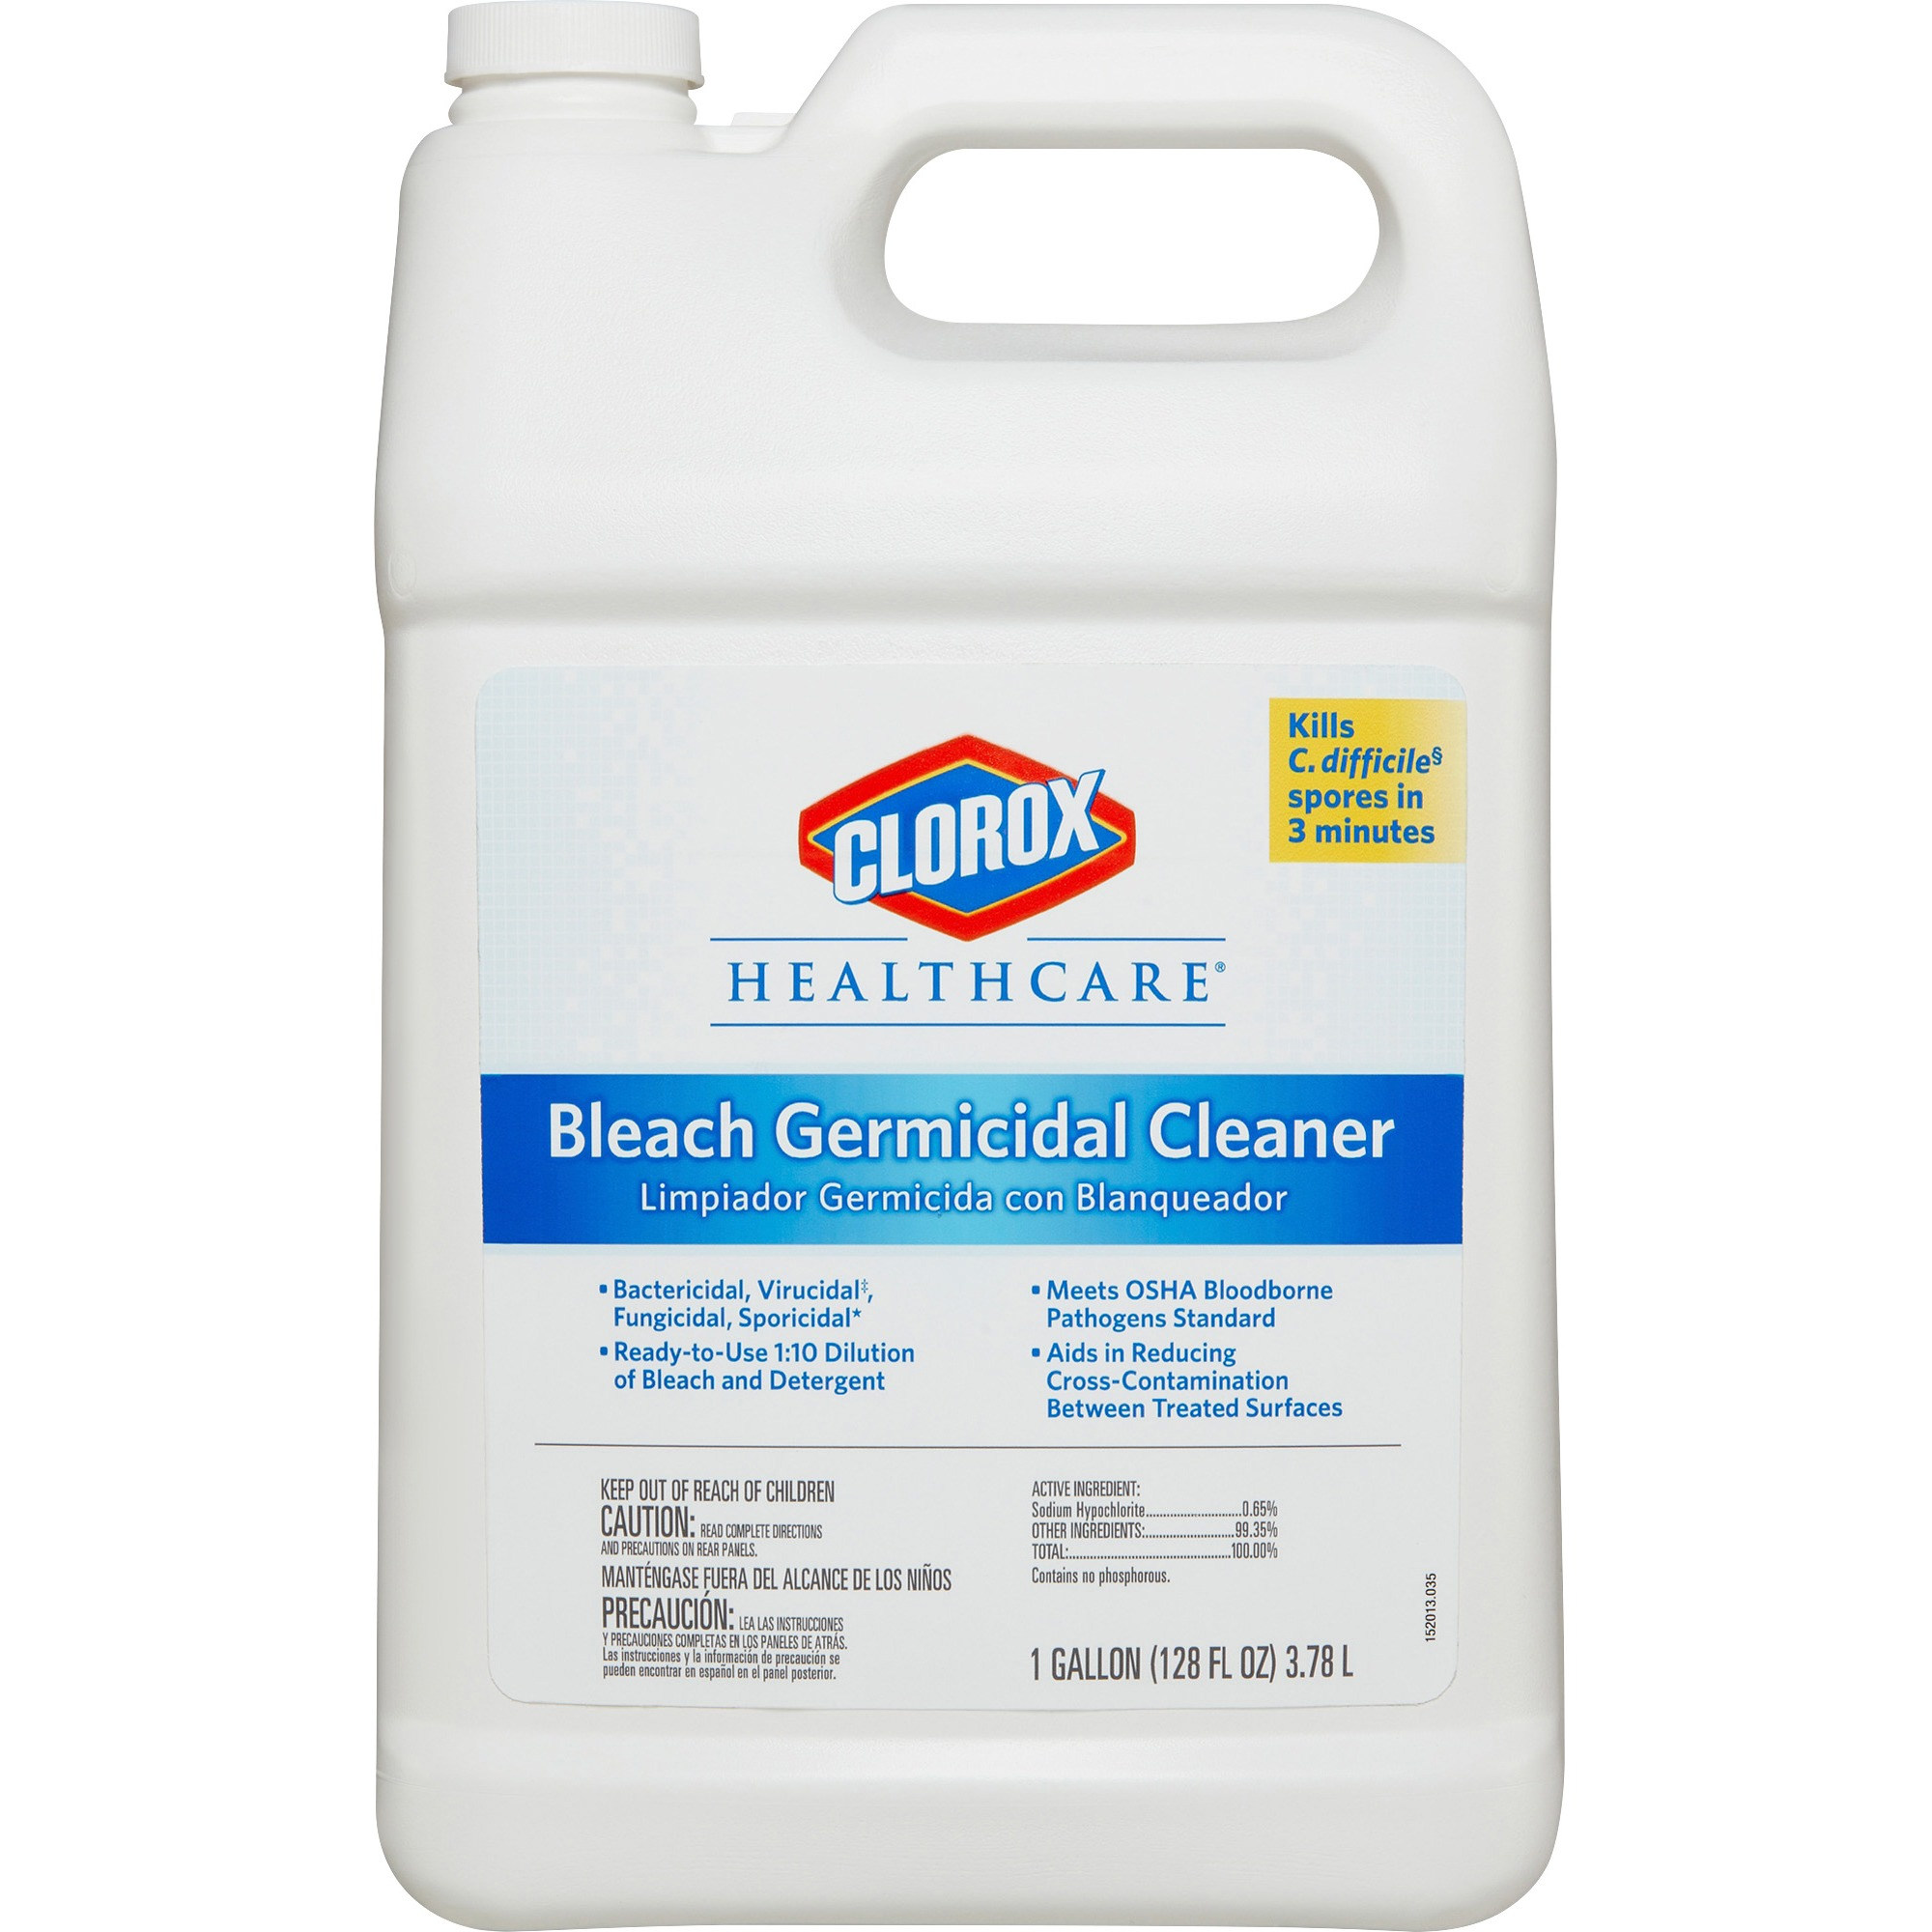 Clorox Healthcare Bleach Germicidal Cleaner Refill, 128 Fl Oz by Clorox